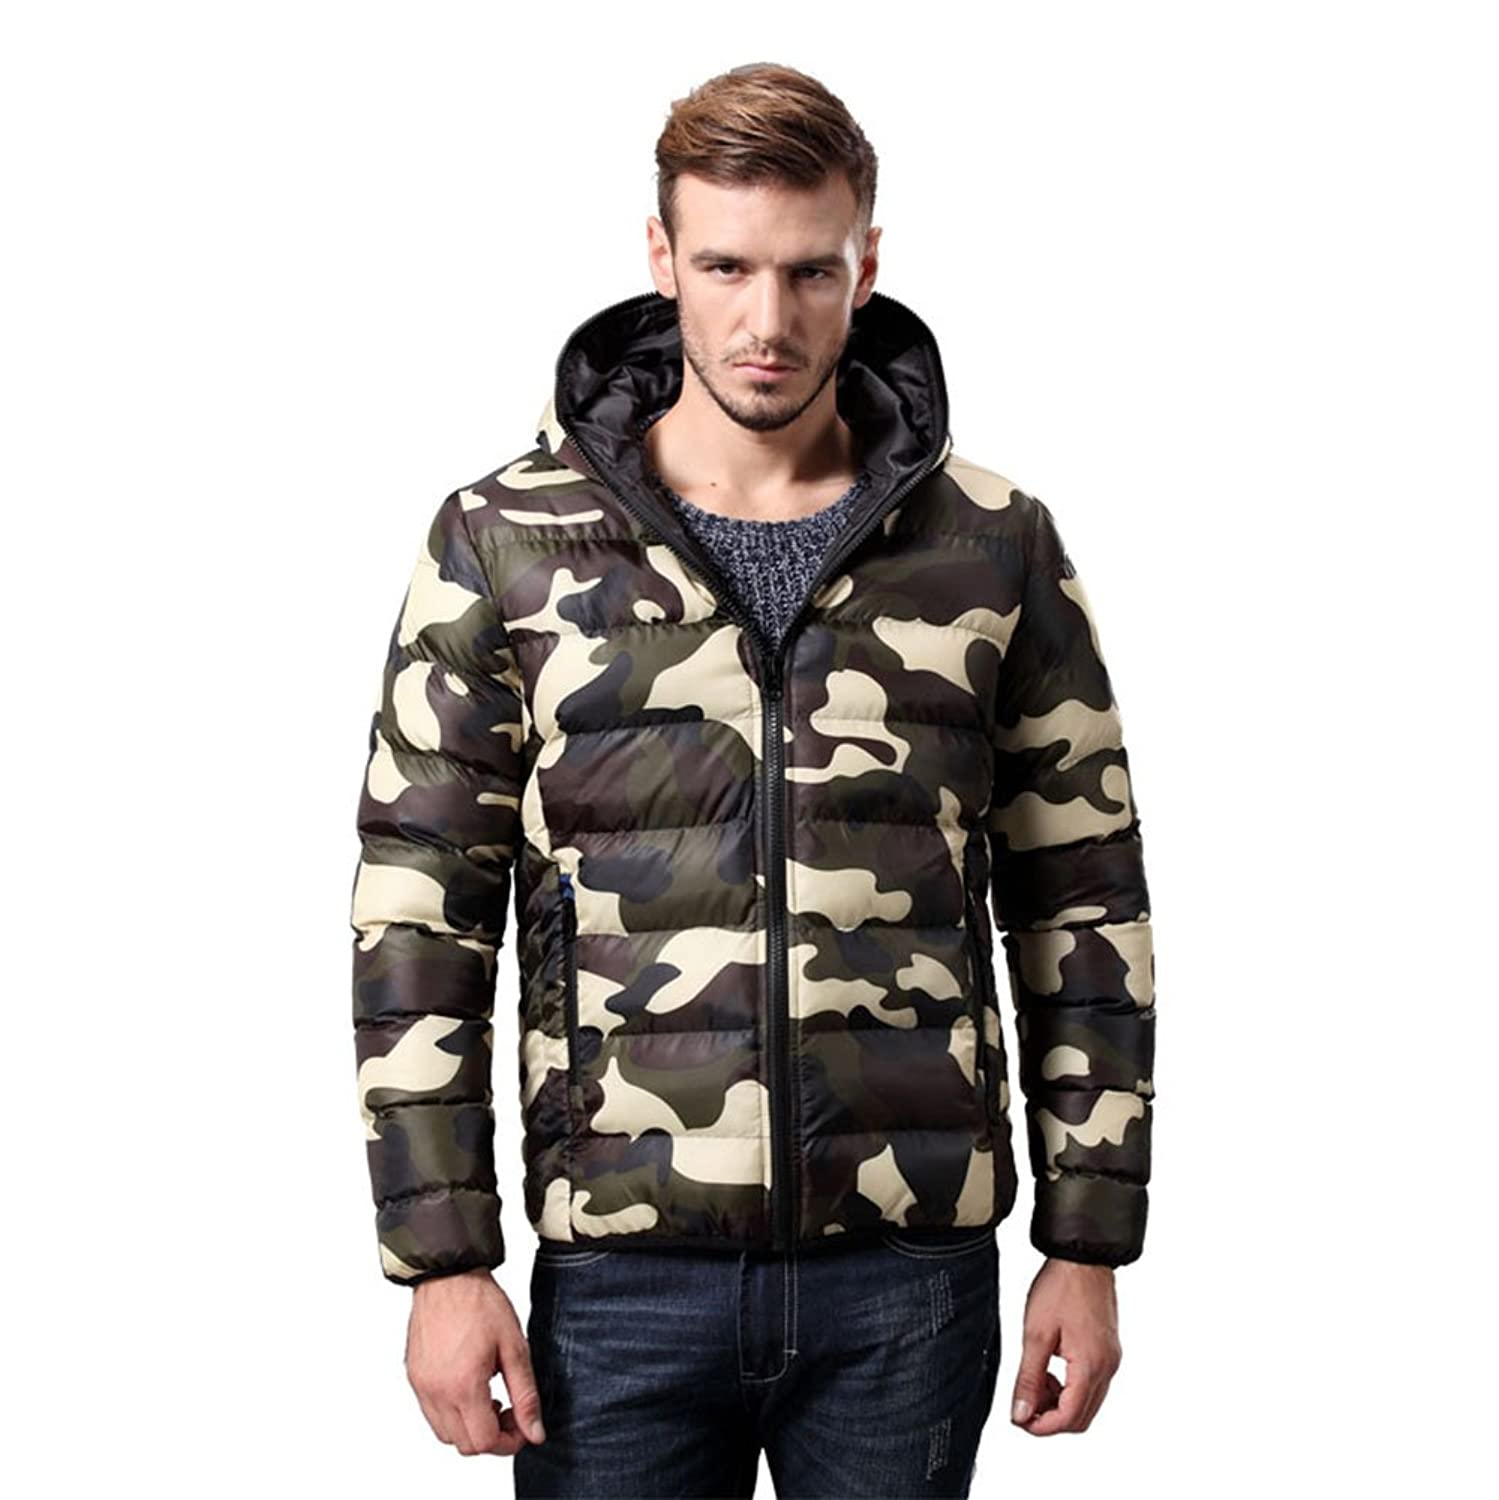 Amazon.com: Maldonado Mens Winter Thick Cotton Coats Hoodies Outwear Warm Down Jacket Parka Thick: Clothing